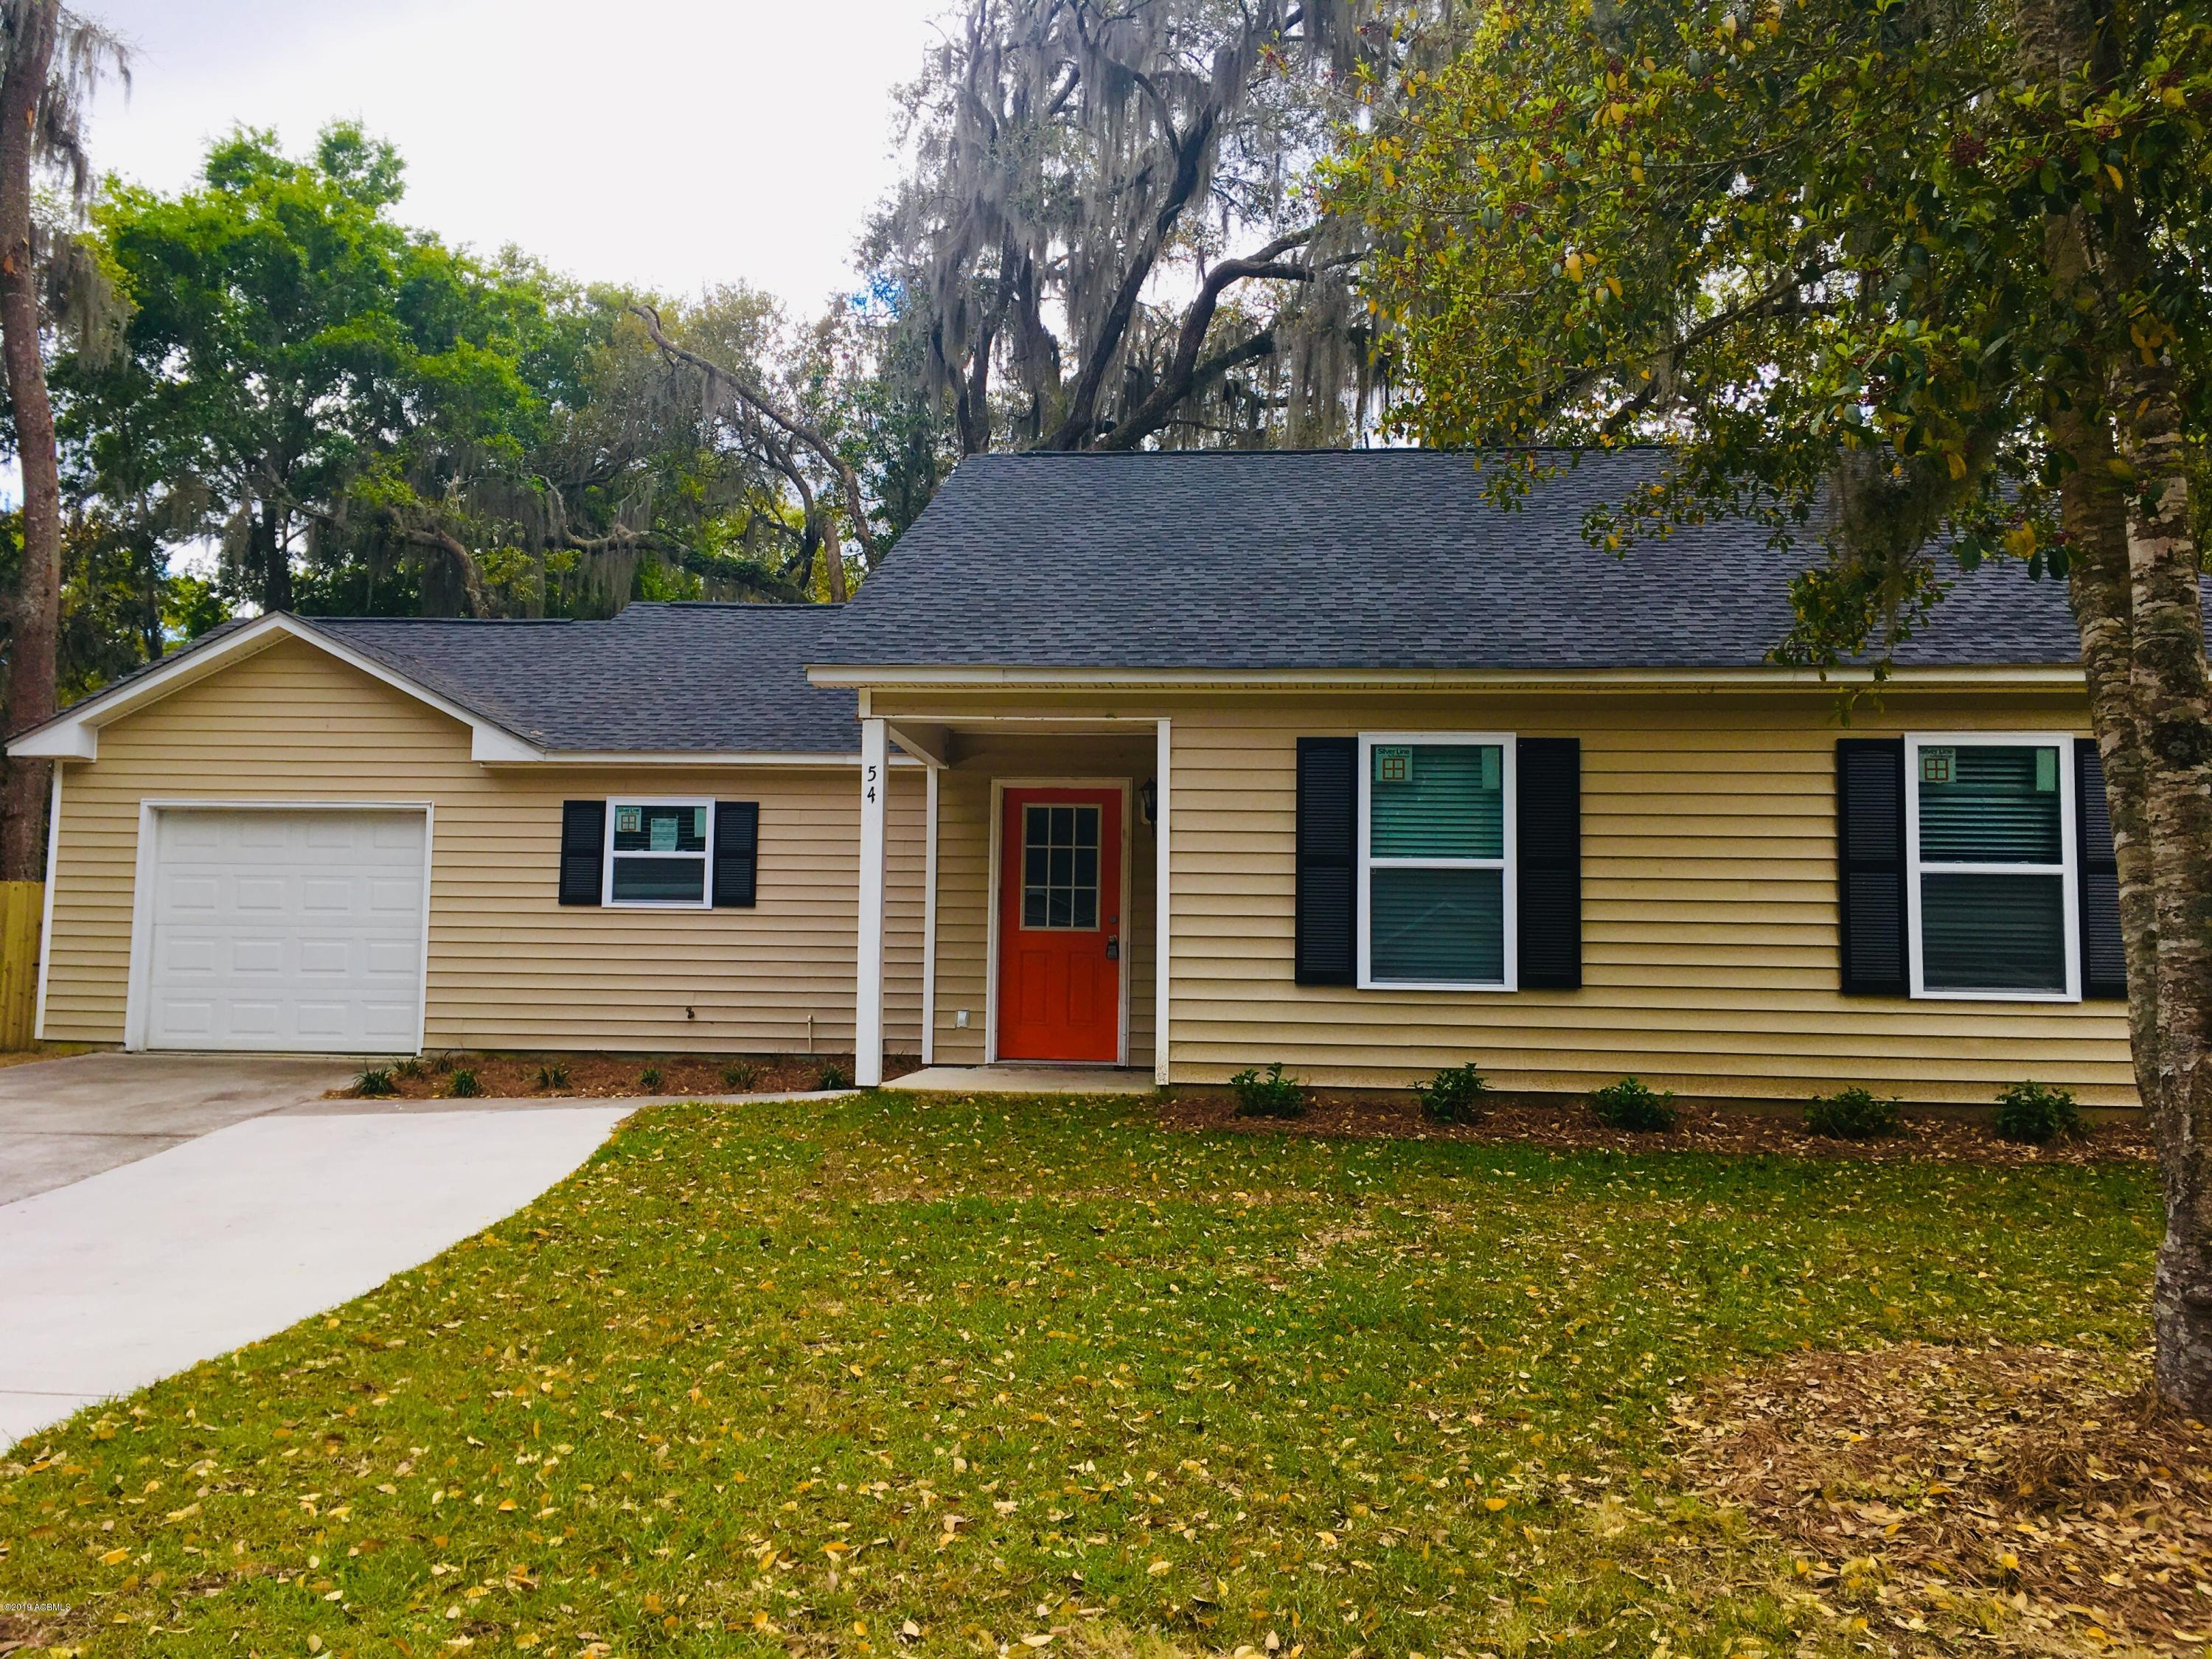 Photo of 54 Brindlewood Drive, Beaufort, SC 29907